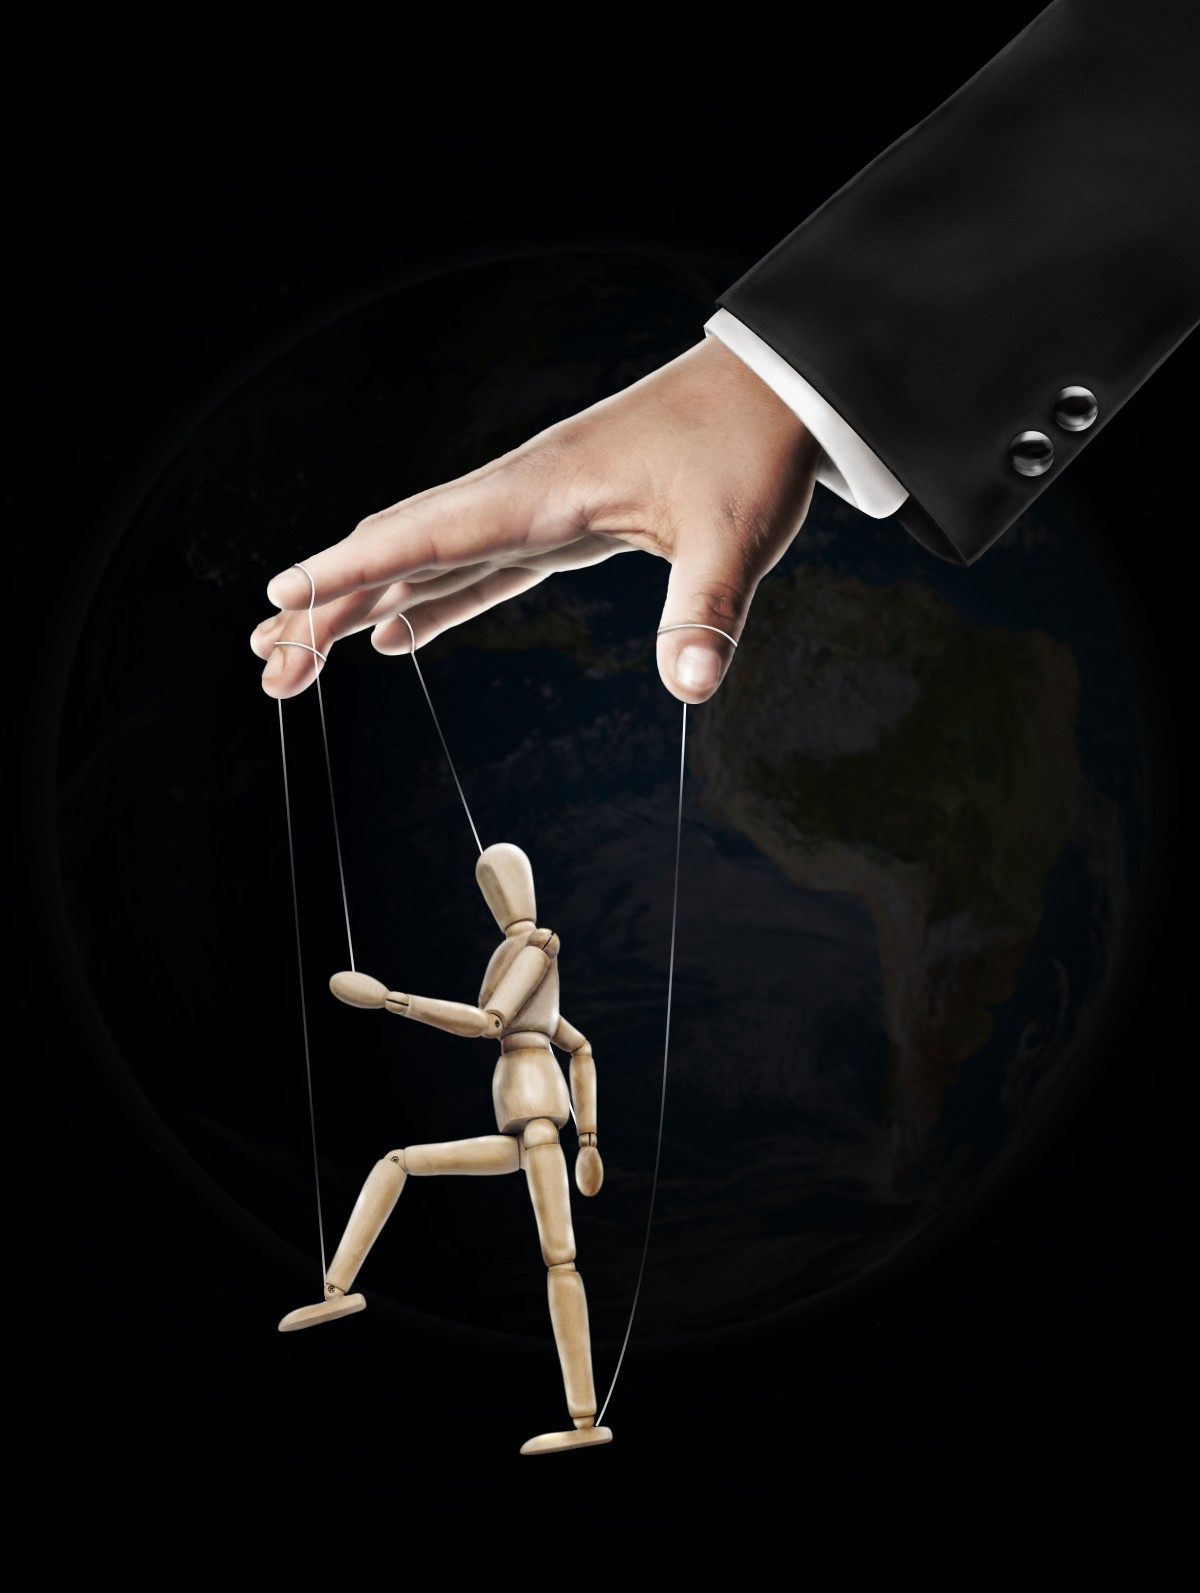 A hand emerging from a suit sleeve controlling the strings of a wooden puppet walking